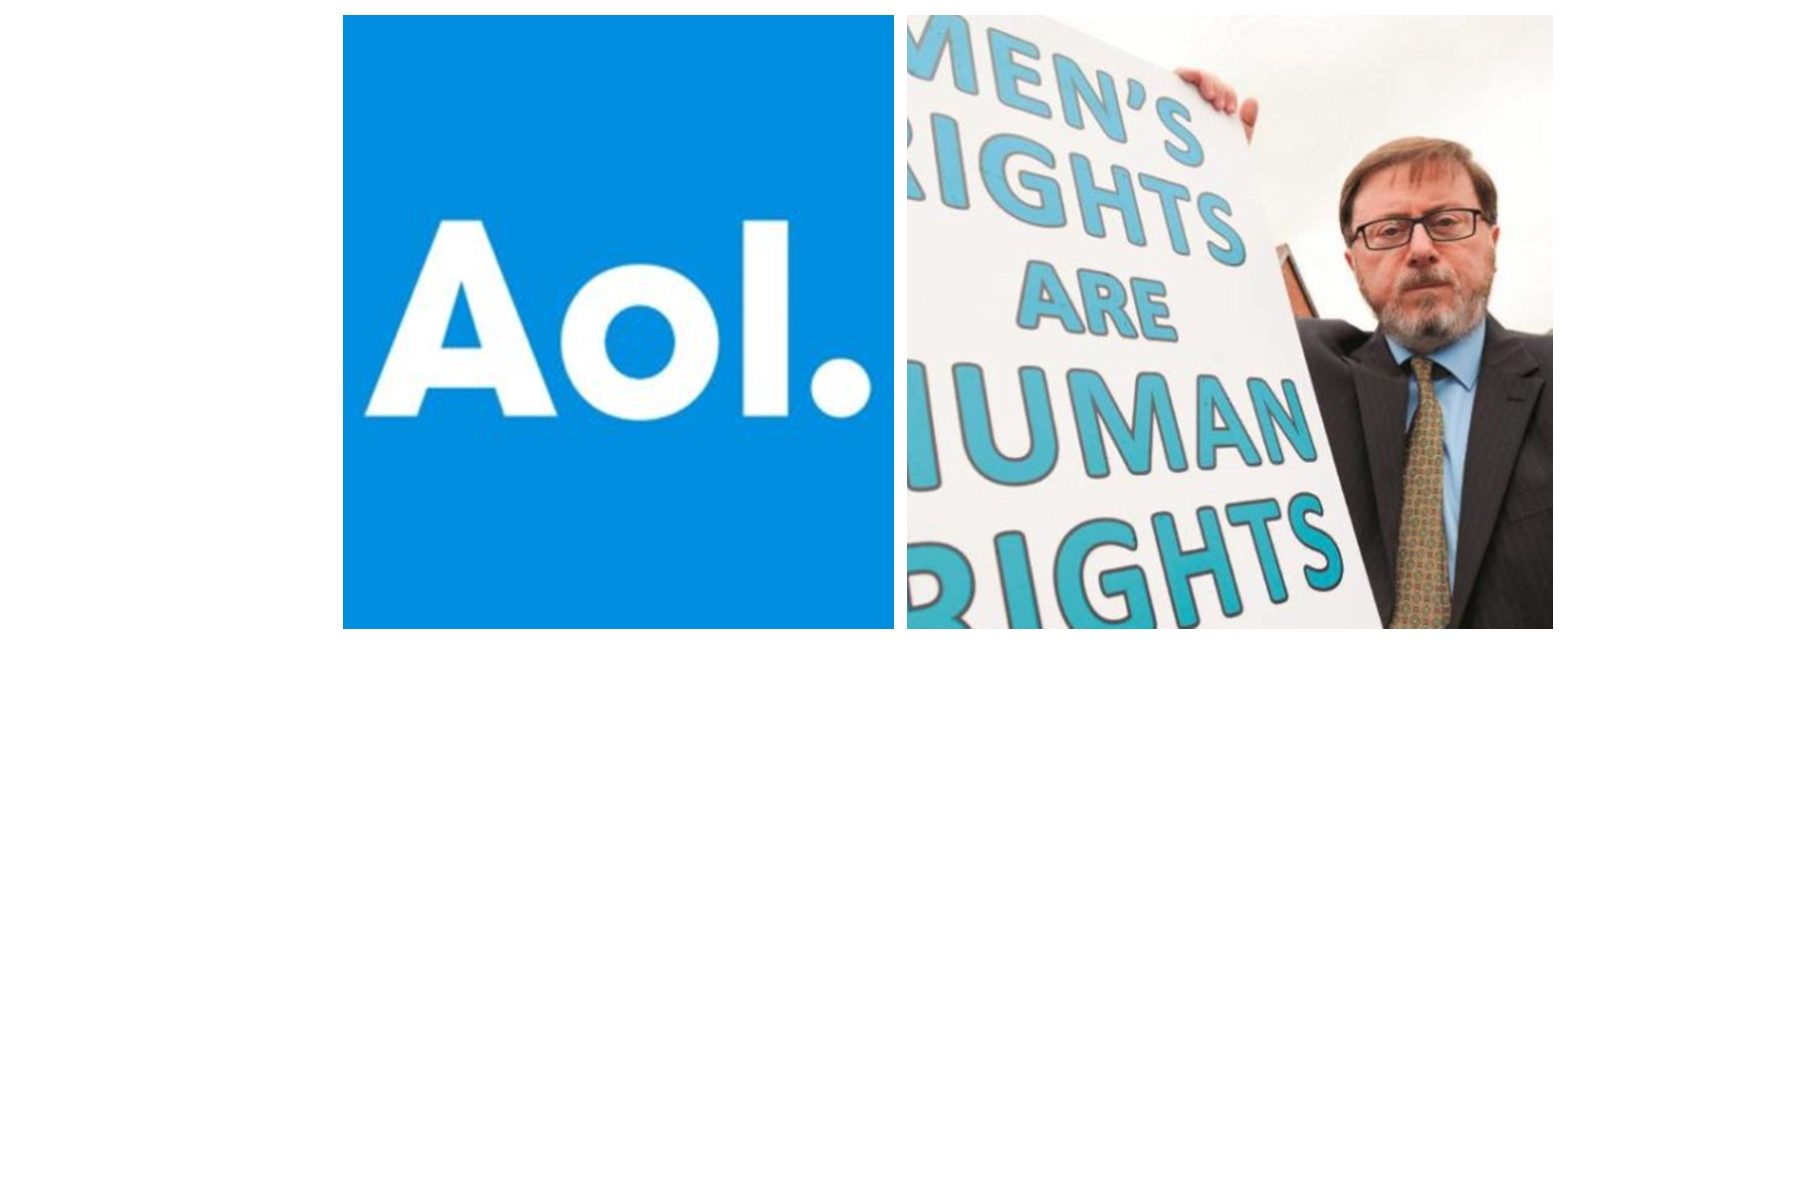 """Online Feminazis """"AOL."""" Report False Charges Of Voyeurism/ Sexual Assault After Media Defamation Of A Man Is Disguised As Online Video Investigation"""